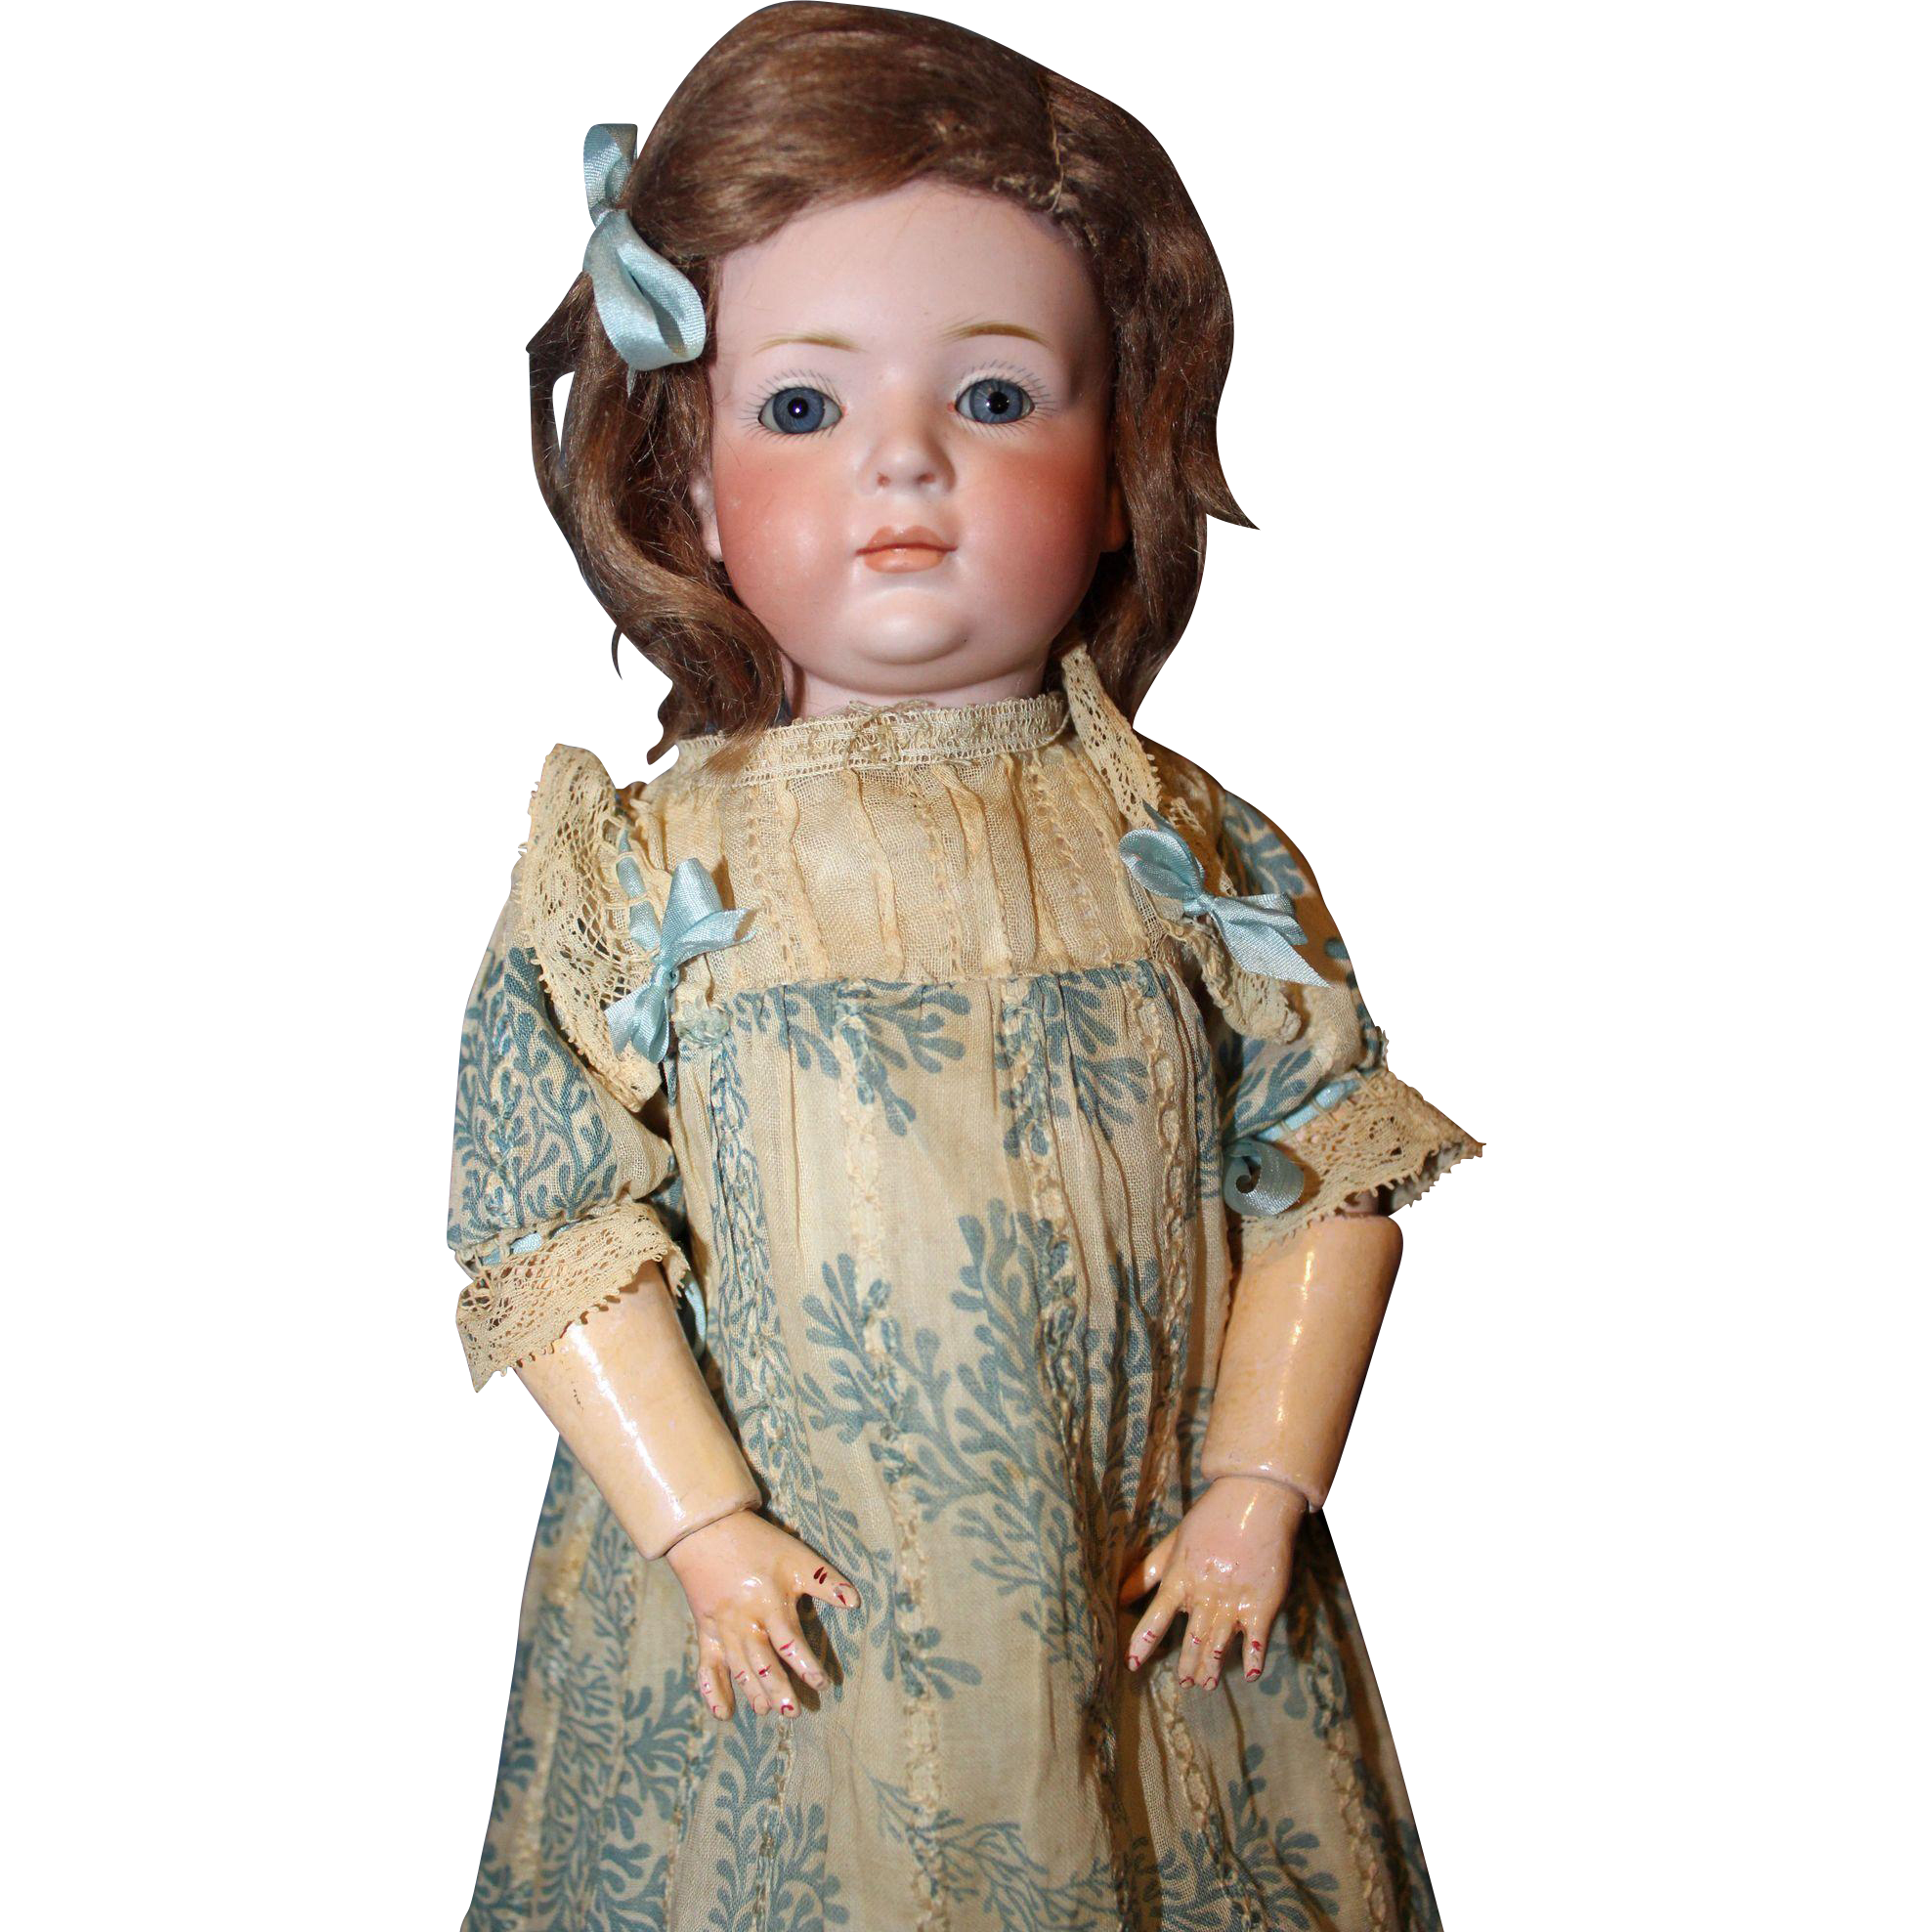 Kley and Hahn 546 Doll Glass eyes